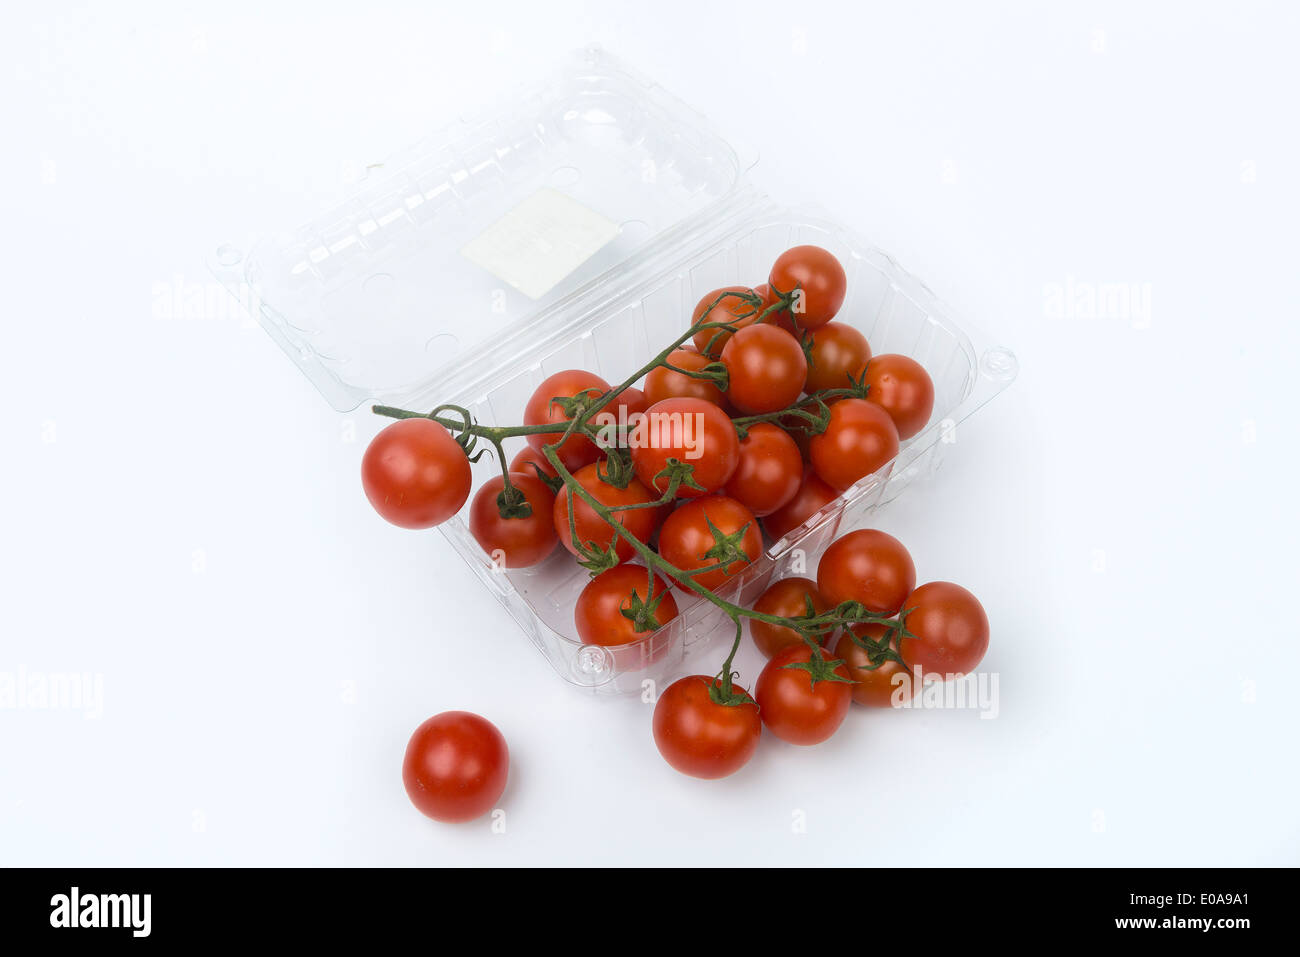 tomatoes in a transparent container - Stock Image